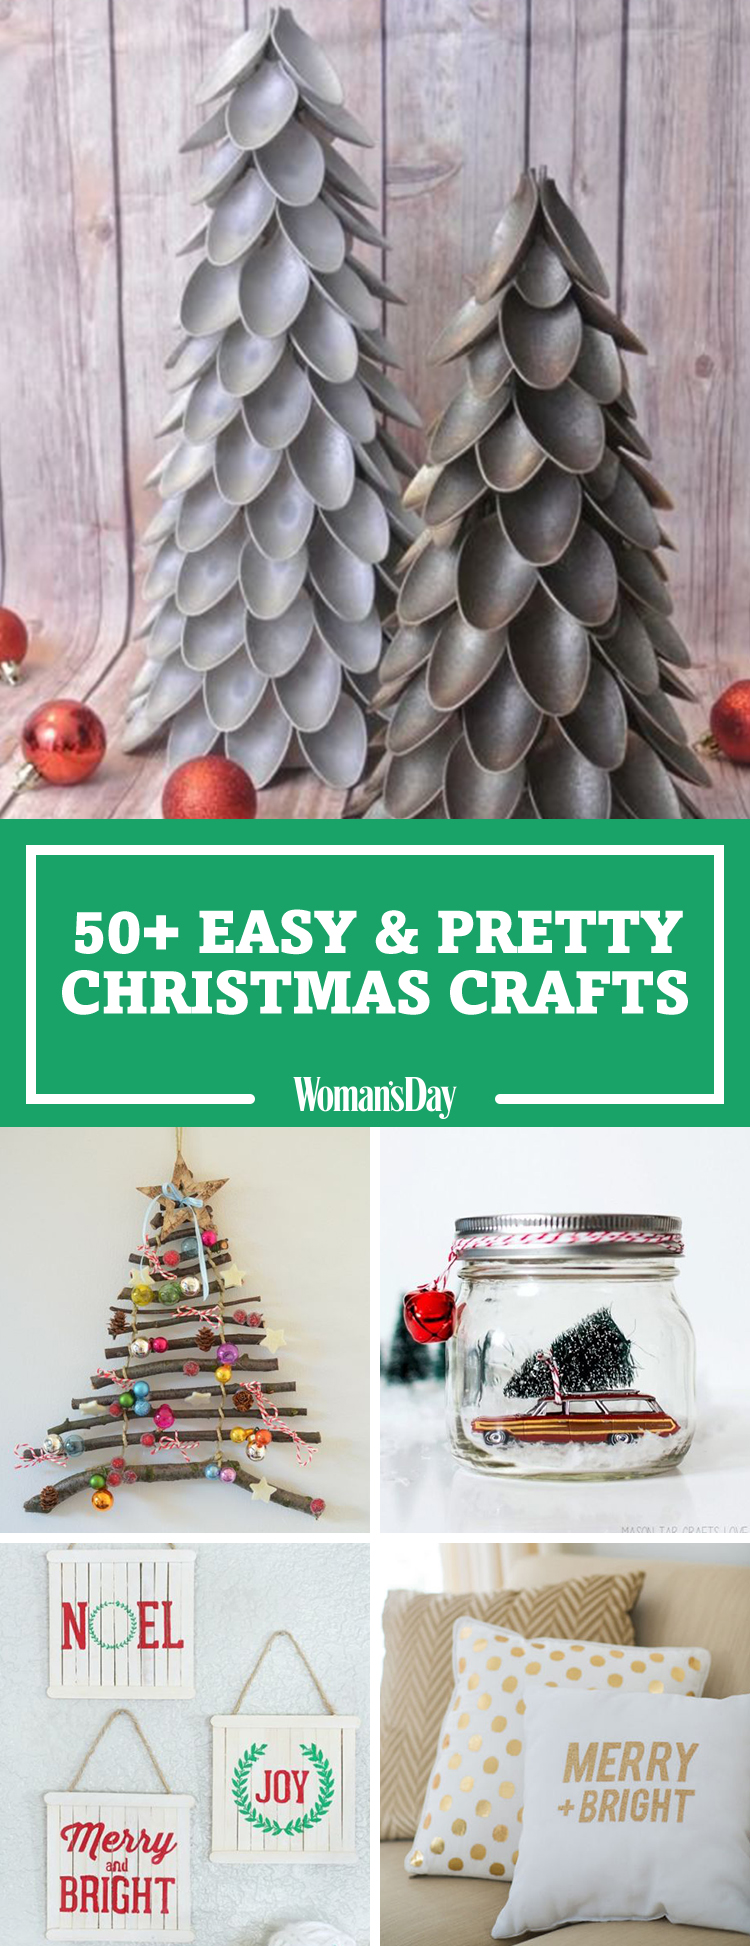 55 easy christmas crafts simple diy holiday craft ideas for Pinterest christmas craft ideas